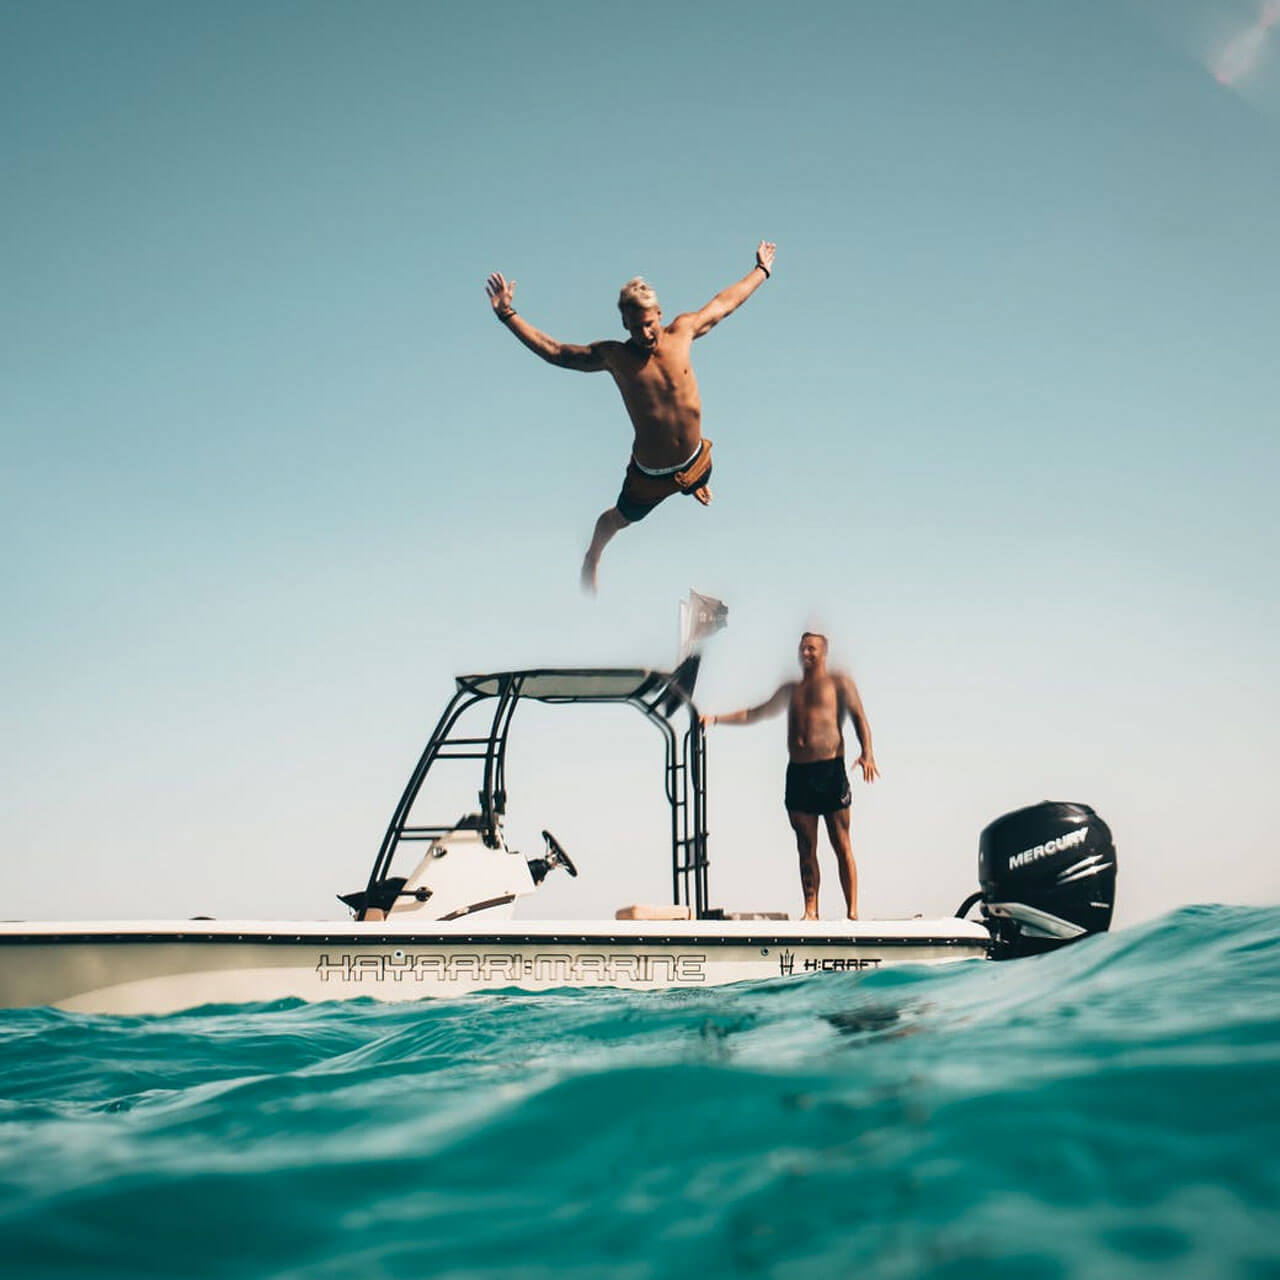 Diving into the good times on a boat